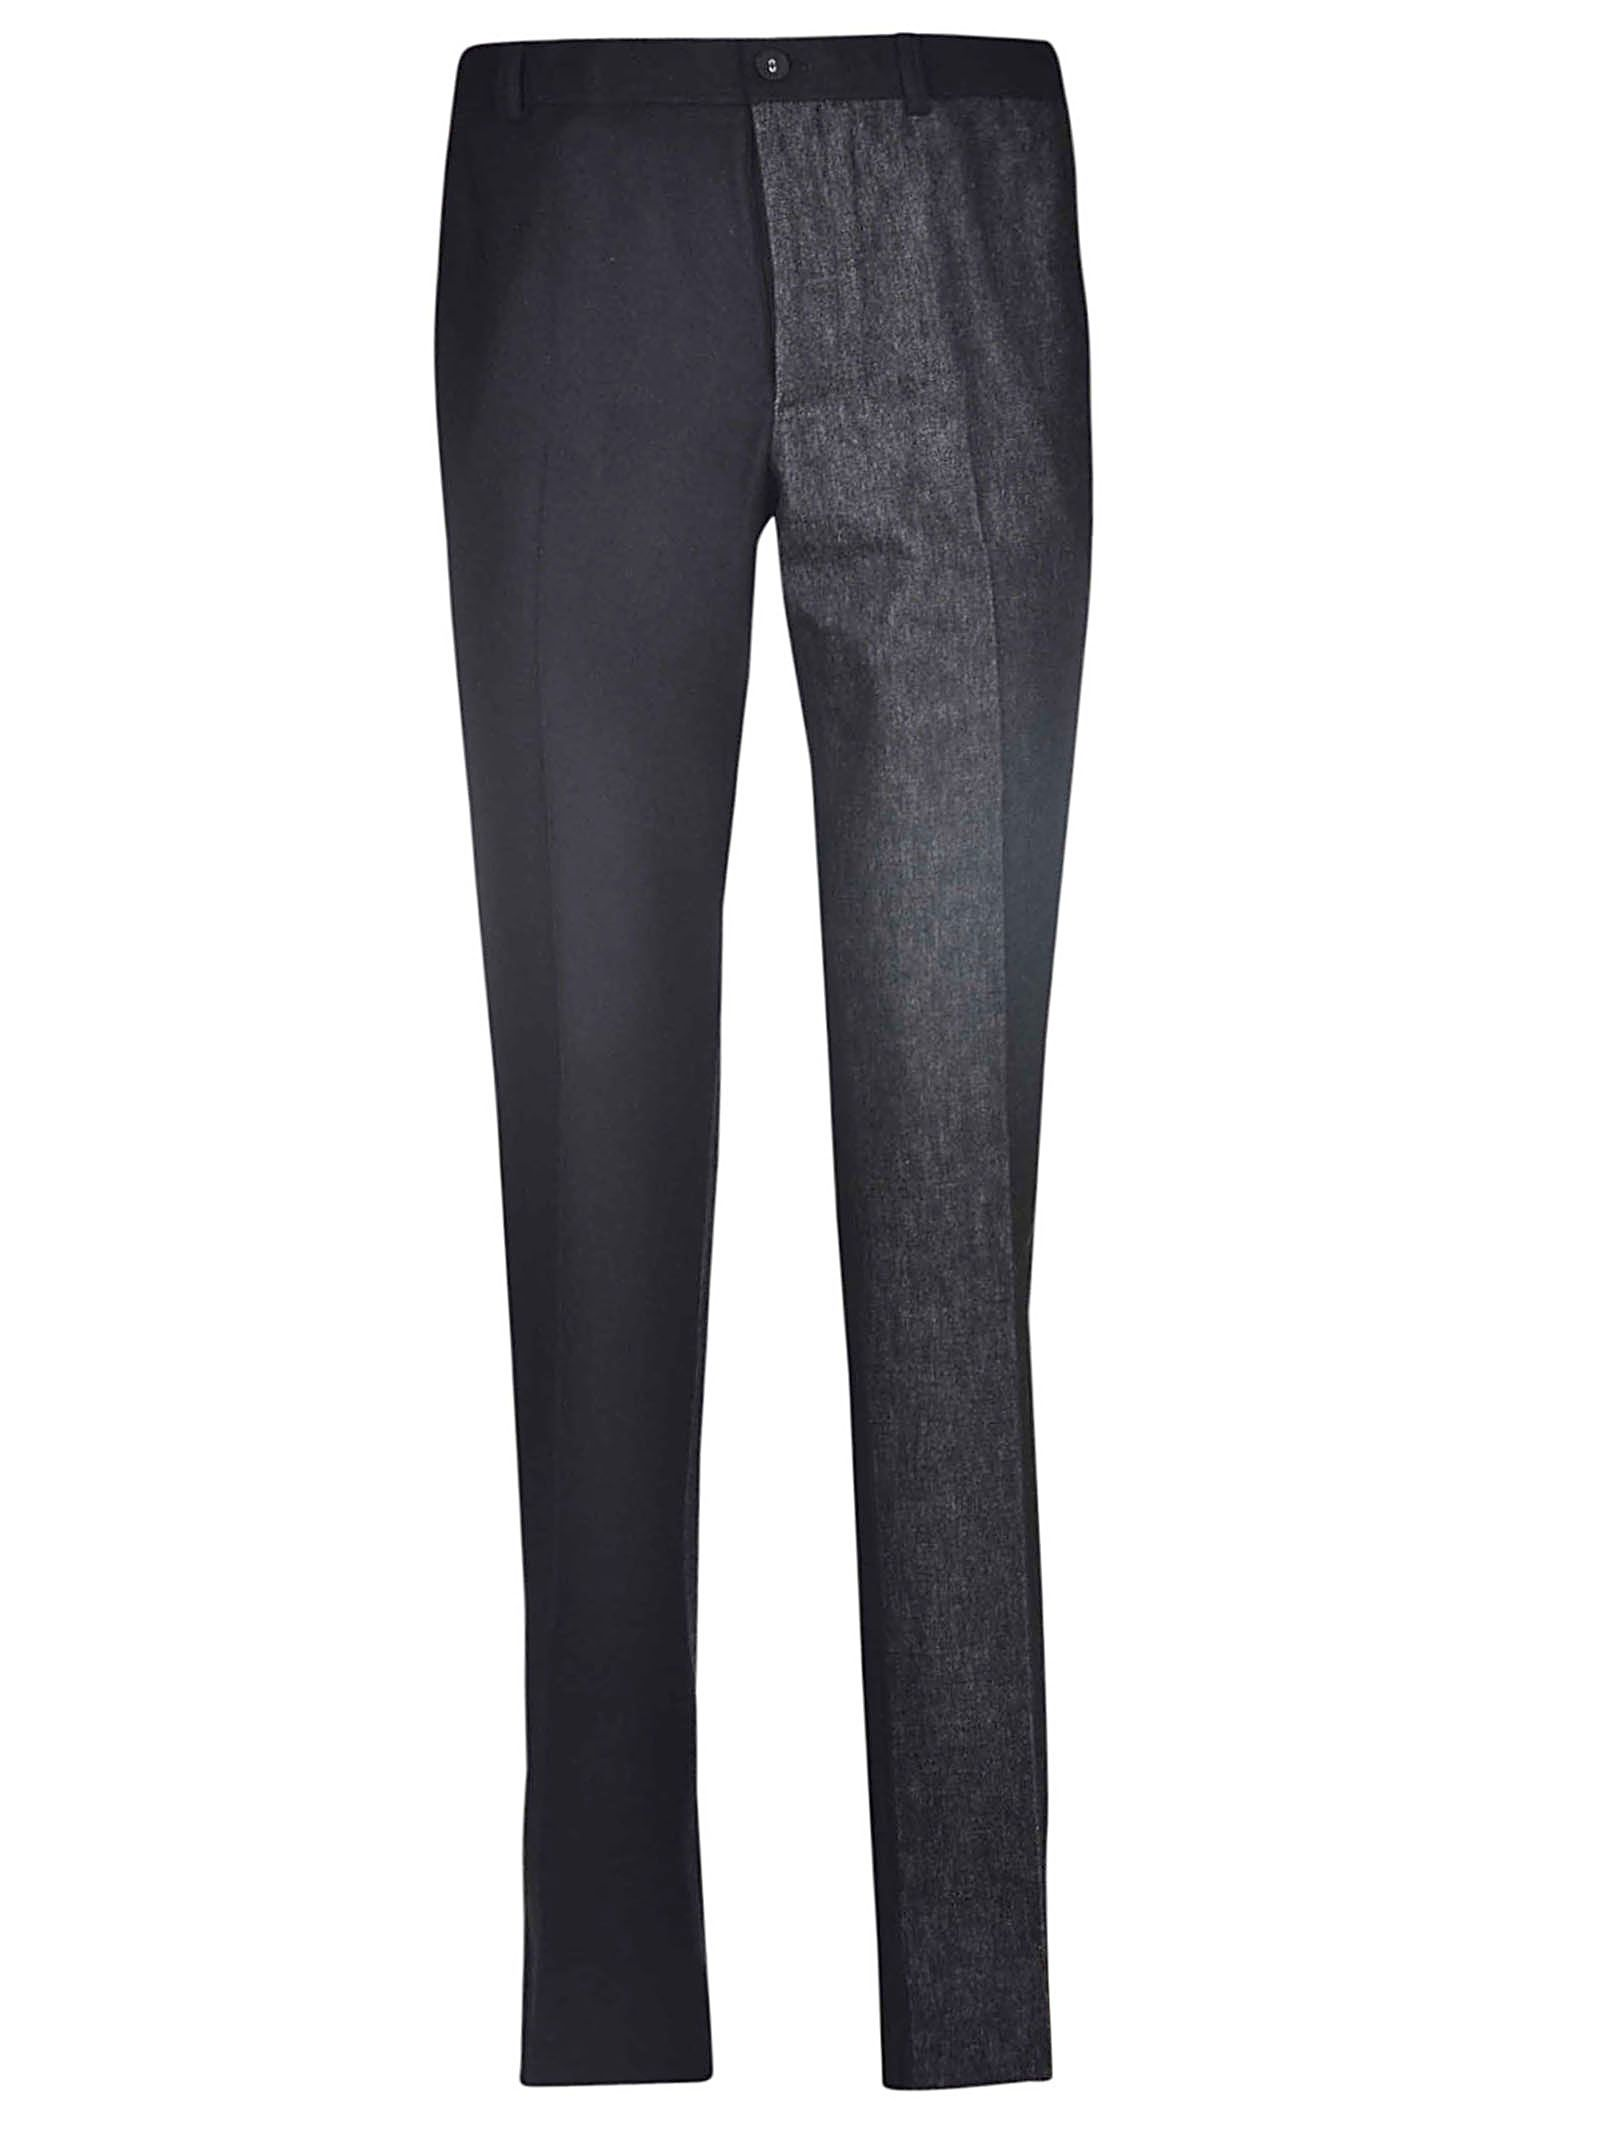 Thom Browne Unconstructured Chino Trousers